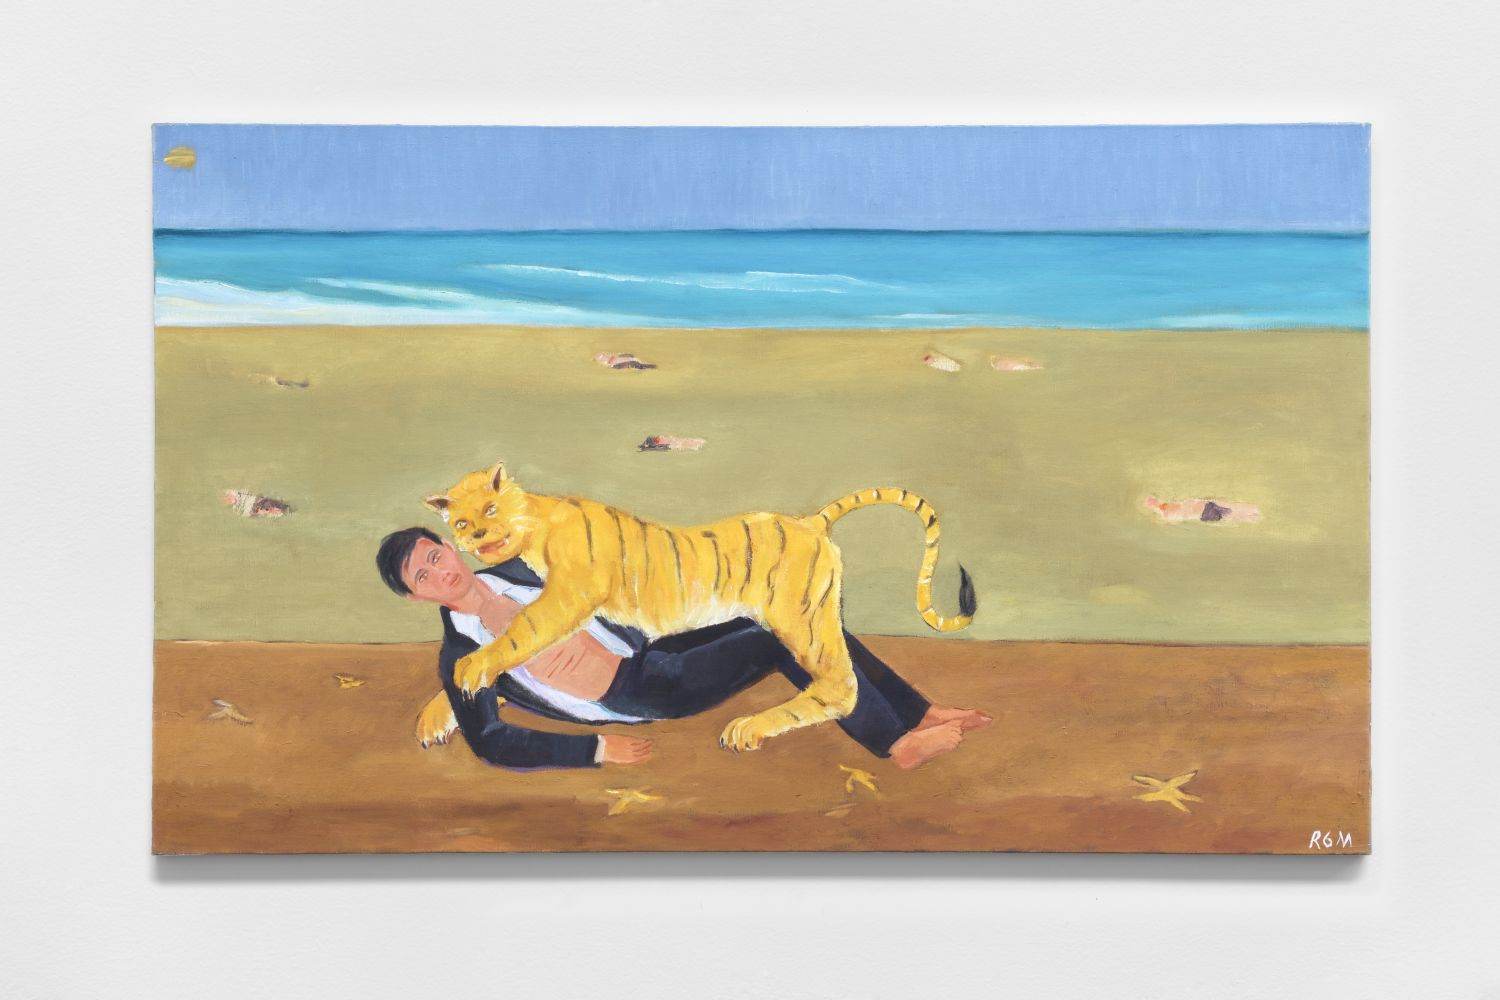 Kurimanzutto will be debuting new paintings by Roberto Gil de Montes at Frieze